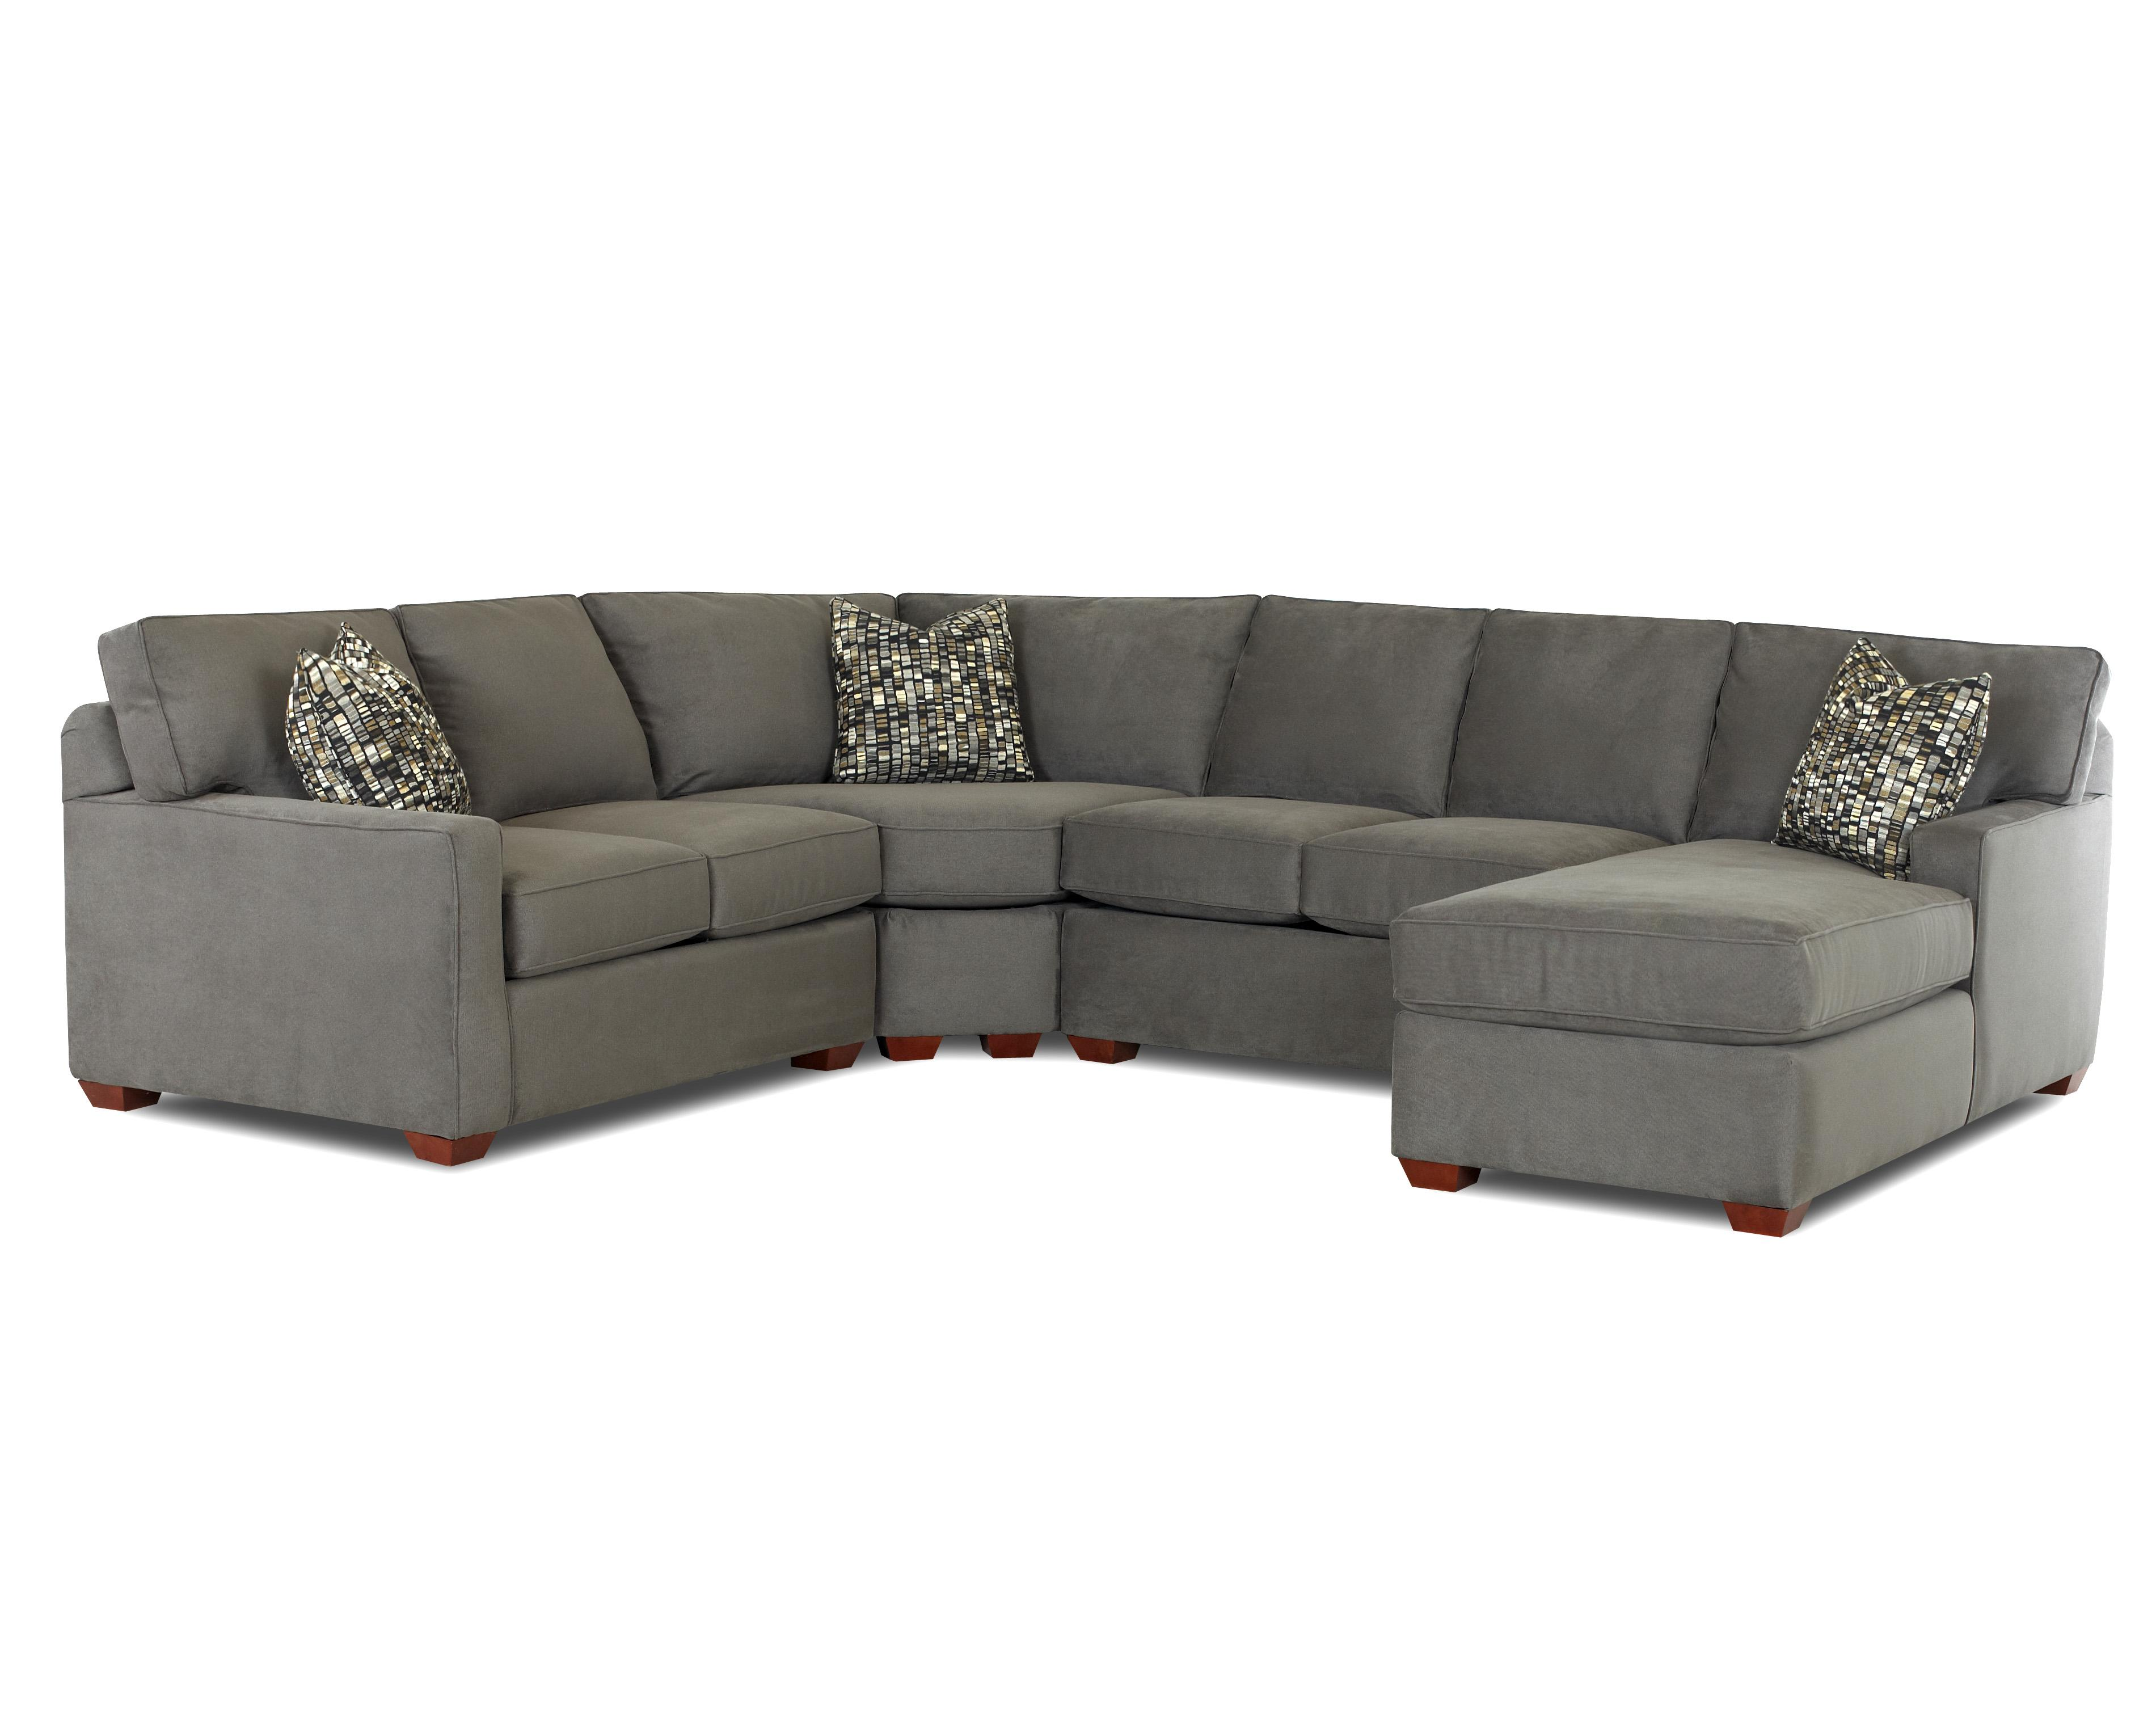 Klaussner Selection Sectional   Item Number: K50000RCHASE+LLS+ALS+WEDGE